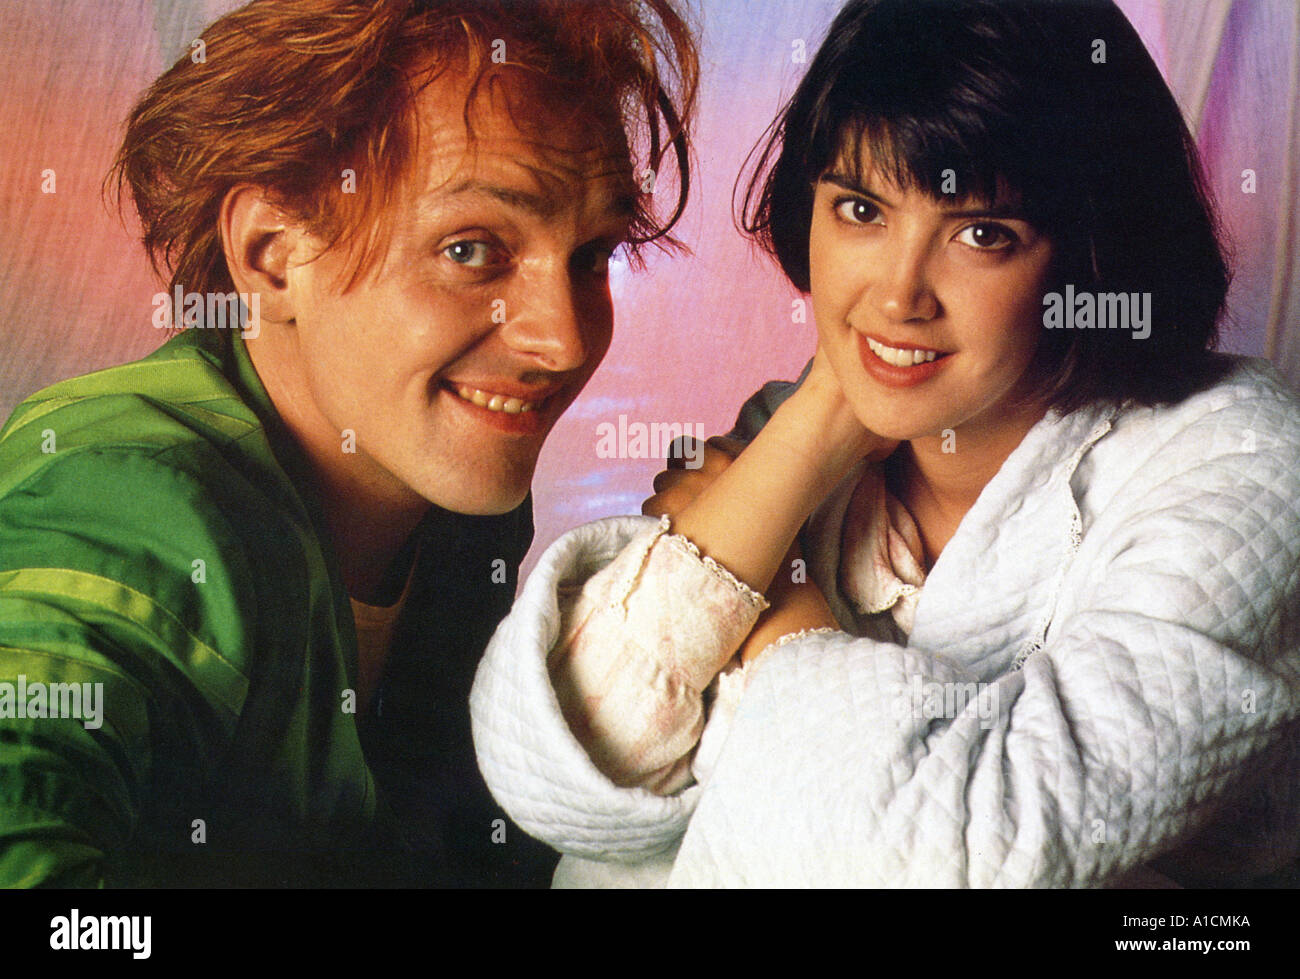 DROP DEAD FRED - Stock Image